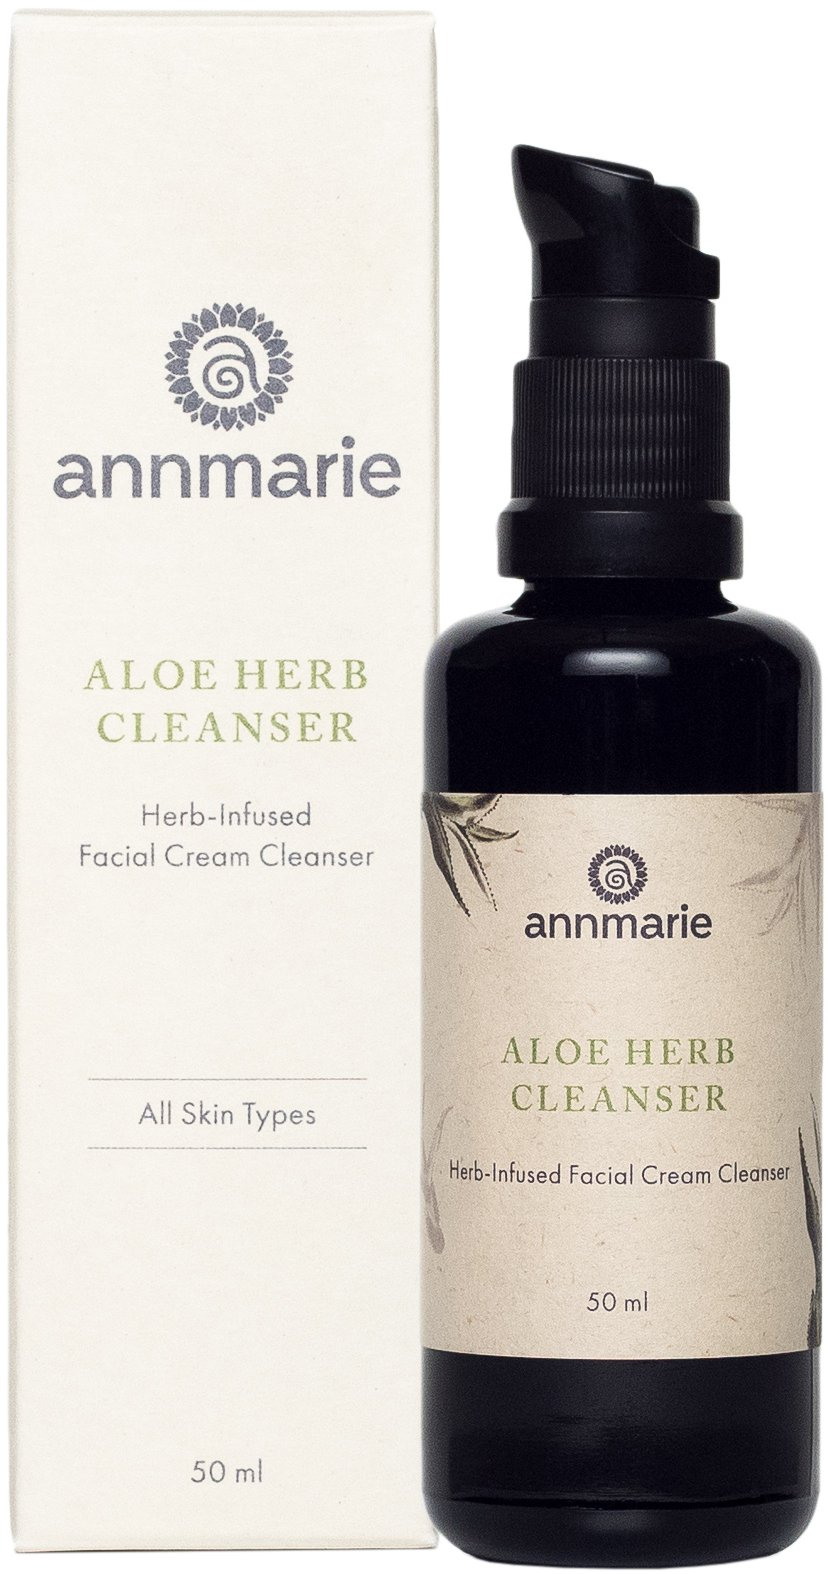 Annmarie Skin Care Aloe-Herb Facial Cleanser - Gentle Cleanser with Aloe Vera, Coconut Oil + Calendula, Suitable for All Skin Types (50 Milliliters, 1.7 Fluid Ounces)